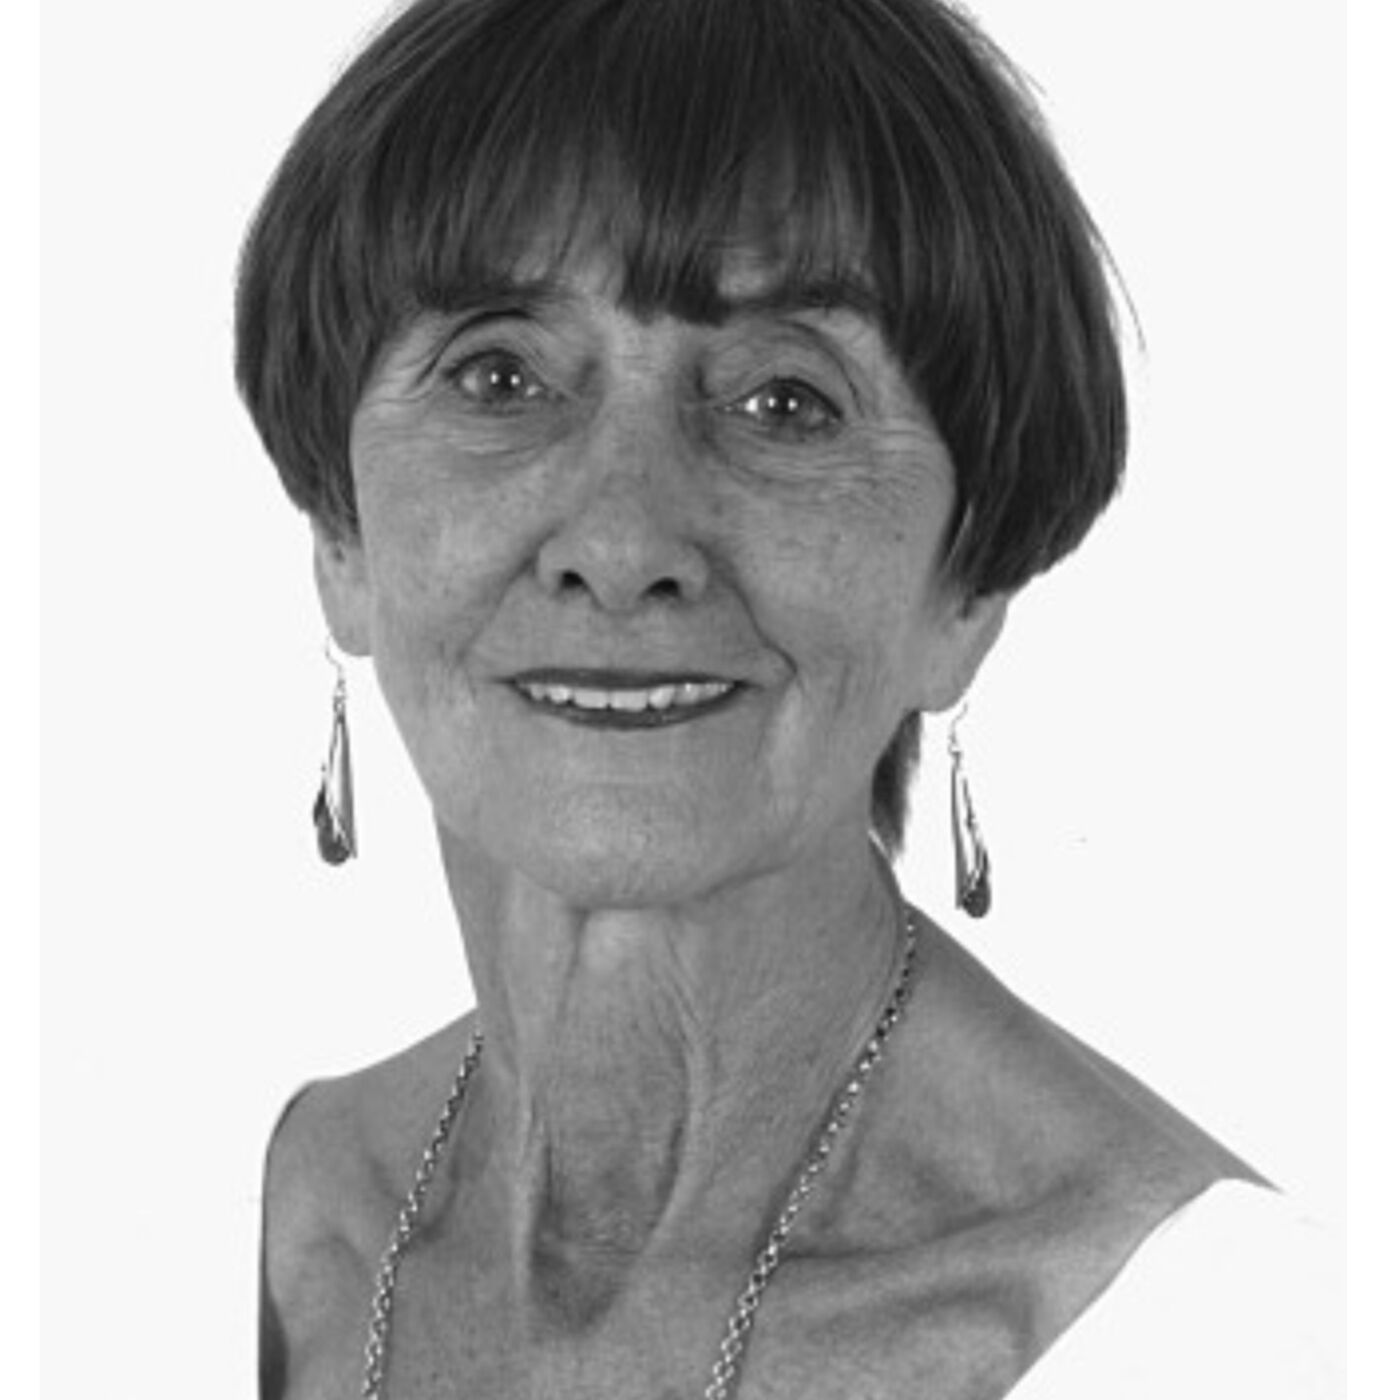 NEW DRAMA - 'Missing You' starring June Brown MBE and Sam Barnard